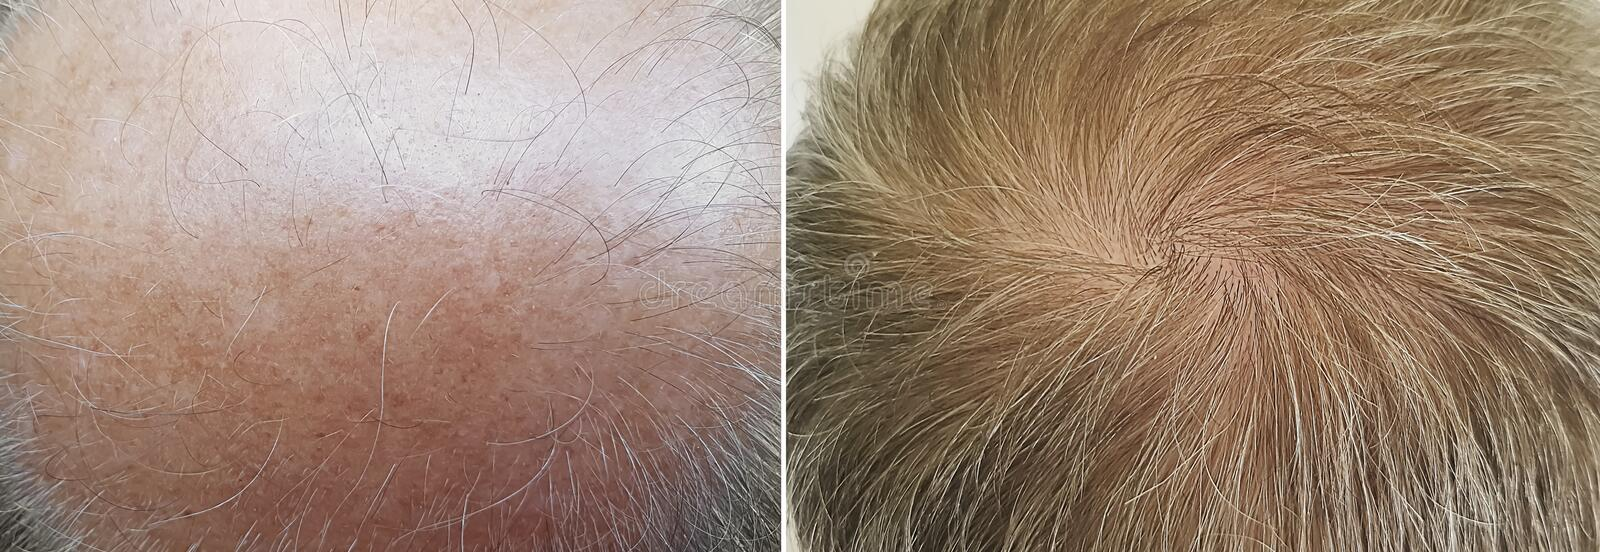 Male  baldness before and after treatment royalty free stock photos